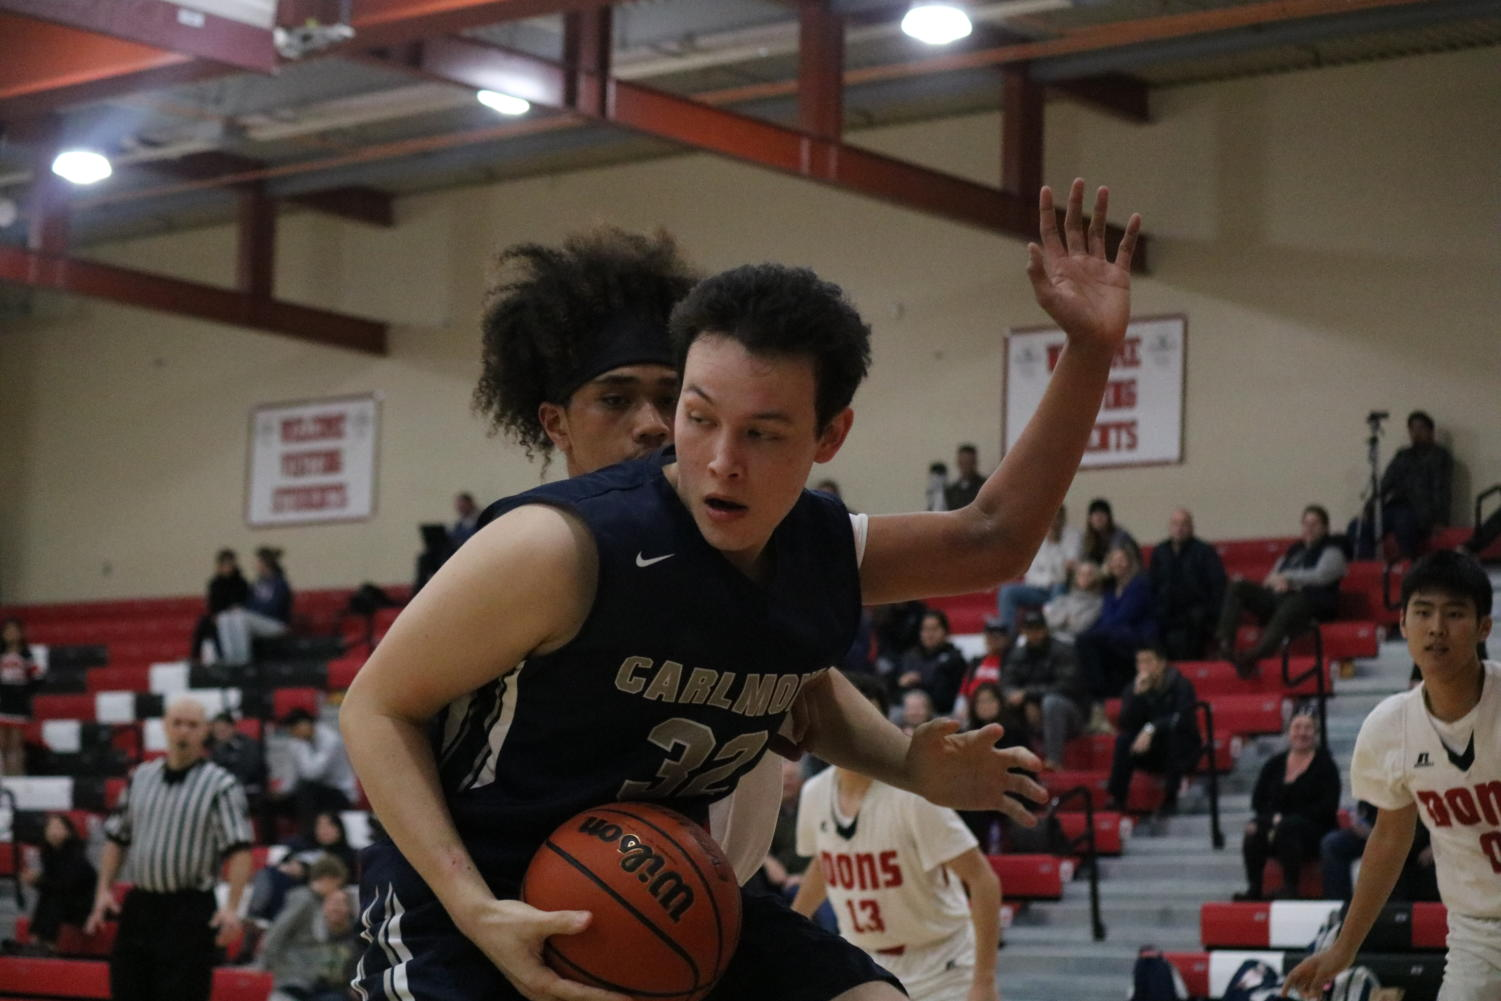 Grant+Acker%2C+a+senior+and+center%2C+looks+for+an+%0A+open+teammate+to+pass+to+under+the+basket.